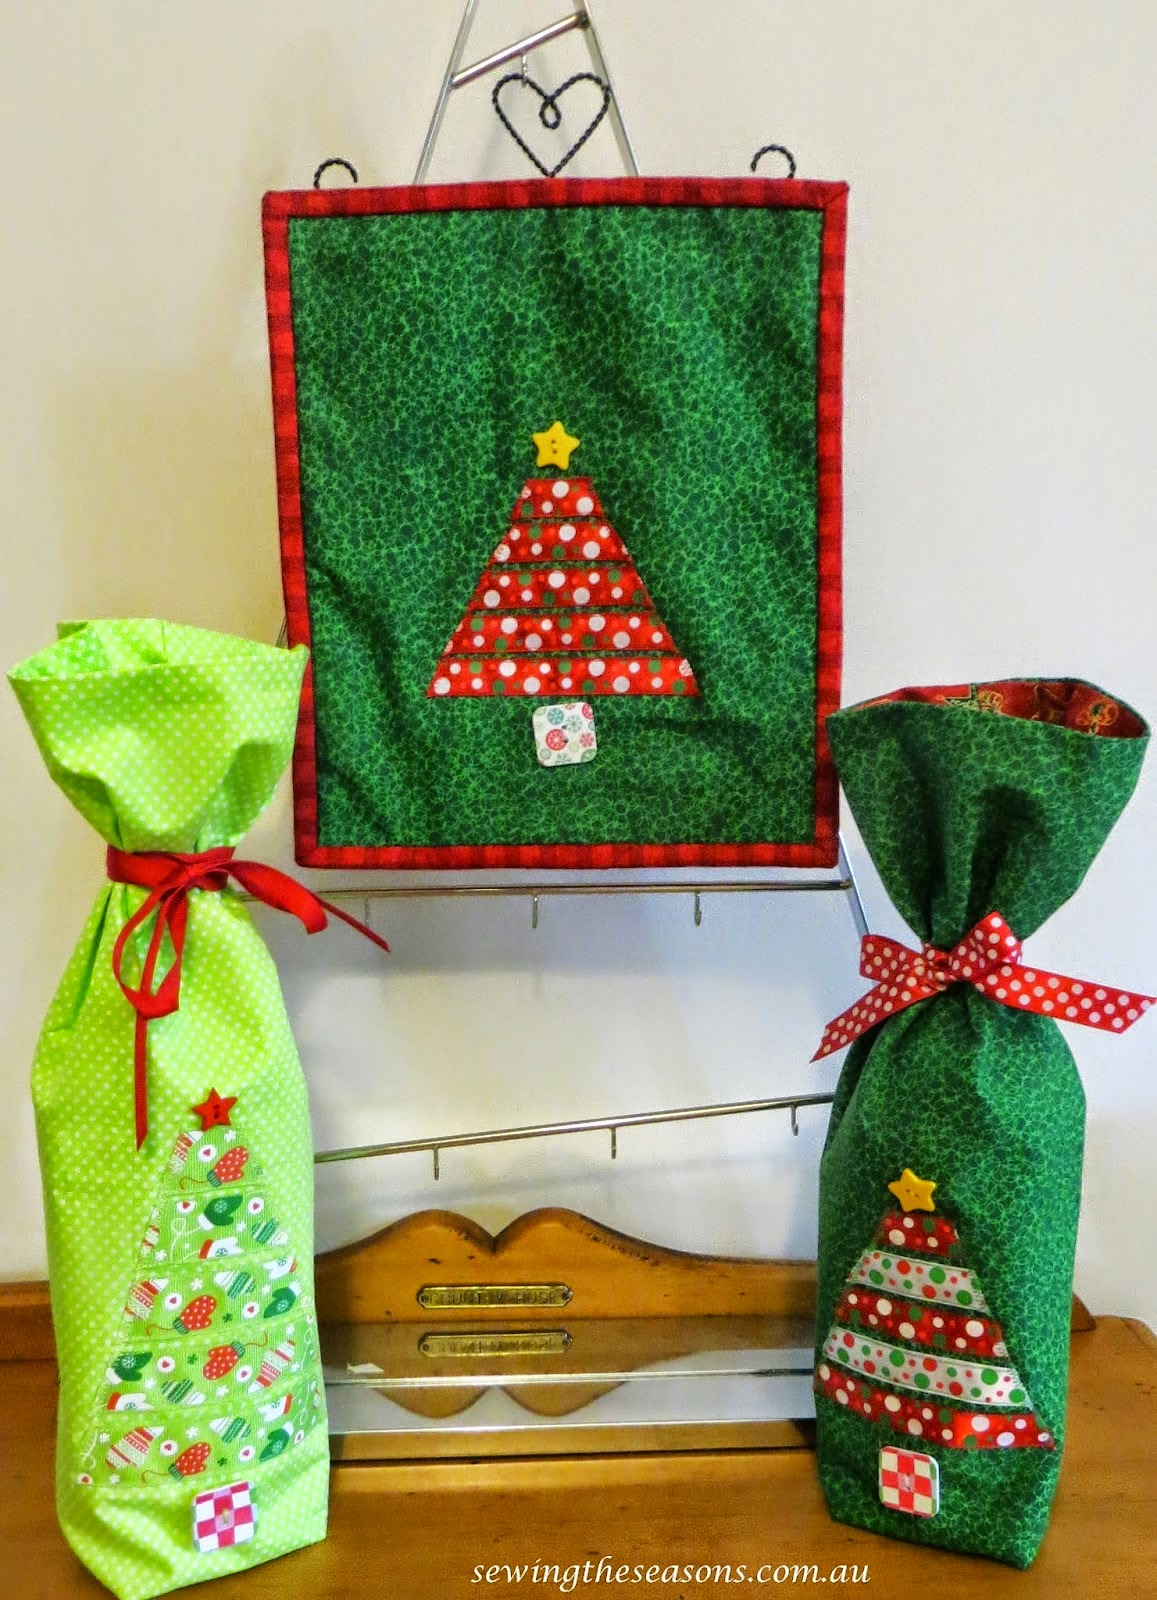 http://www.sewingtheseasons.com.au/2014/12/tutorial-ribbon-christmas-tree.html